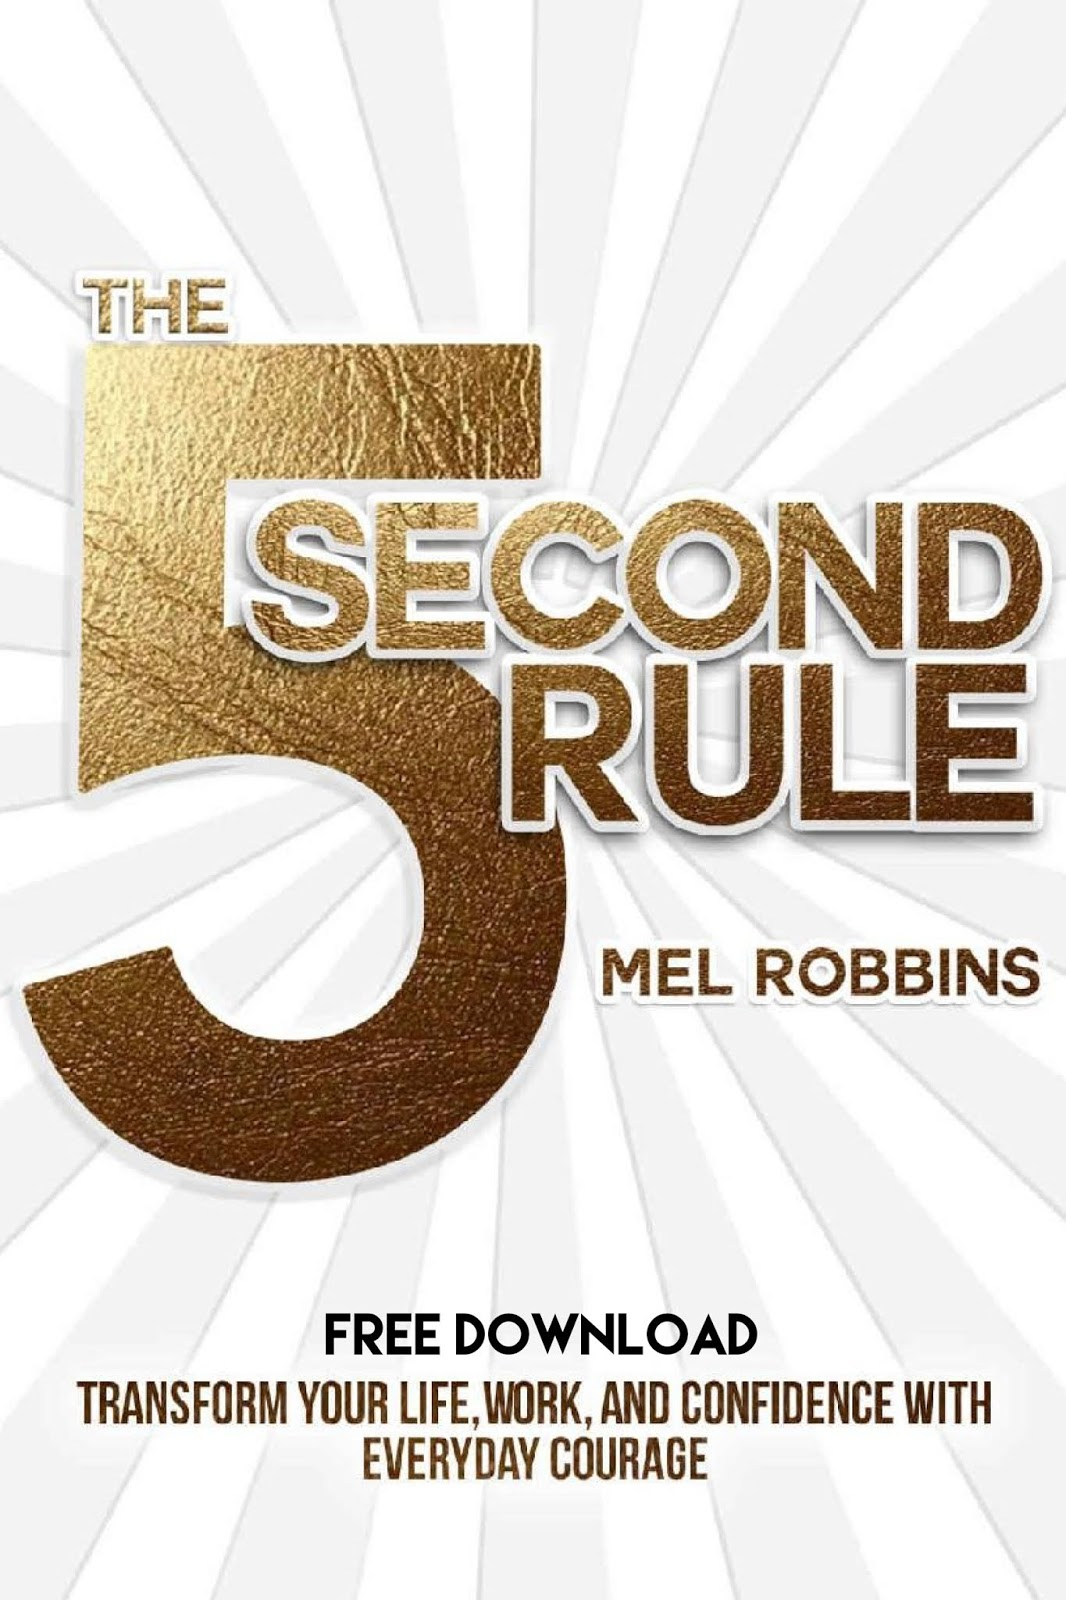 5 Second Rule Book Pdf Download